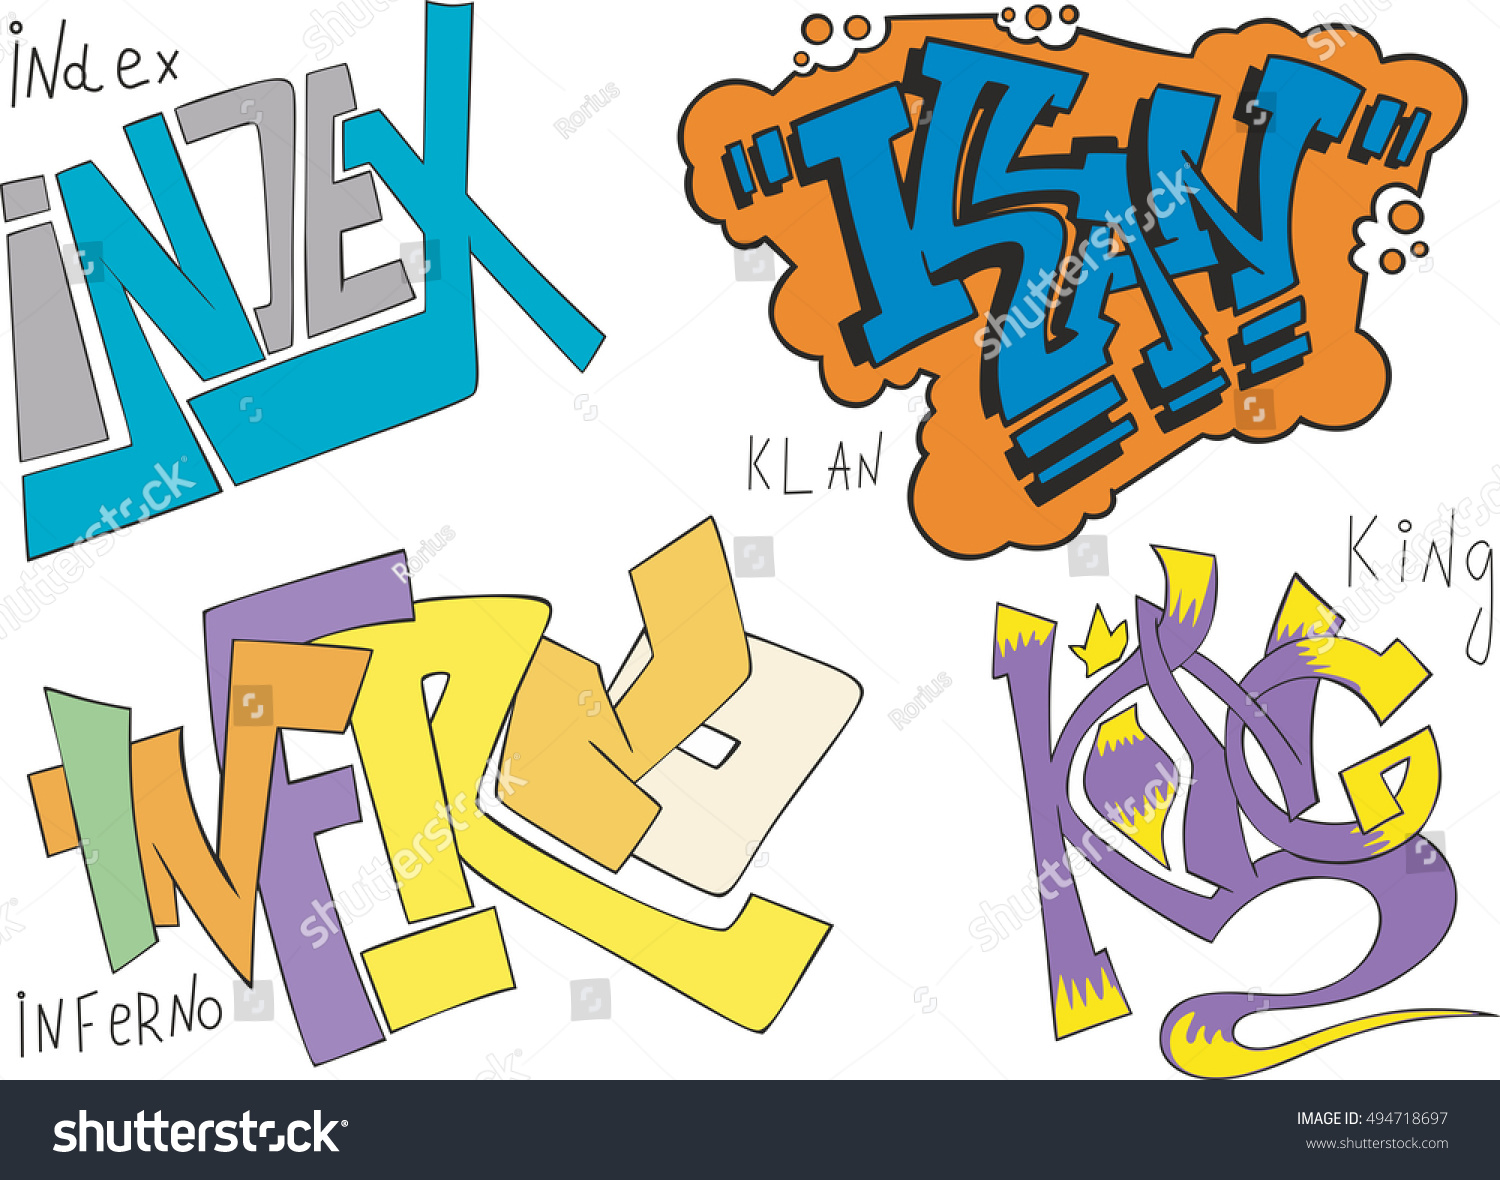 Set of four graffiti sketches index klan inferno and king